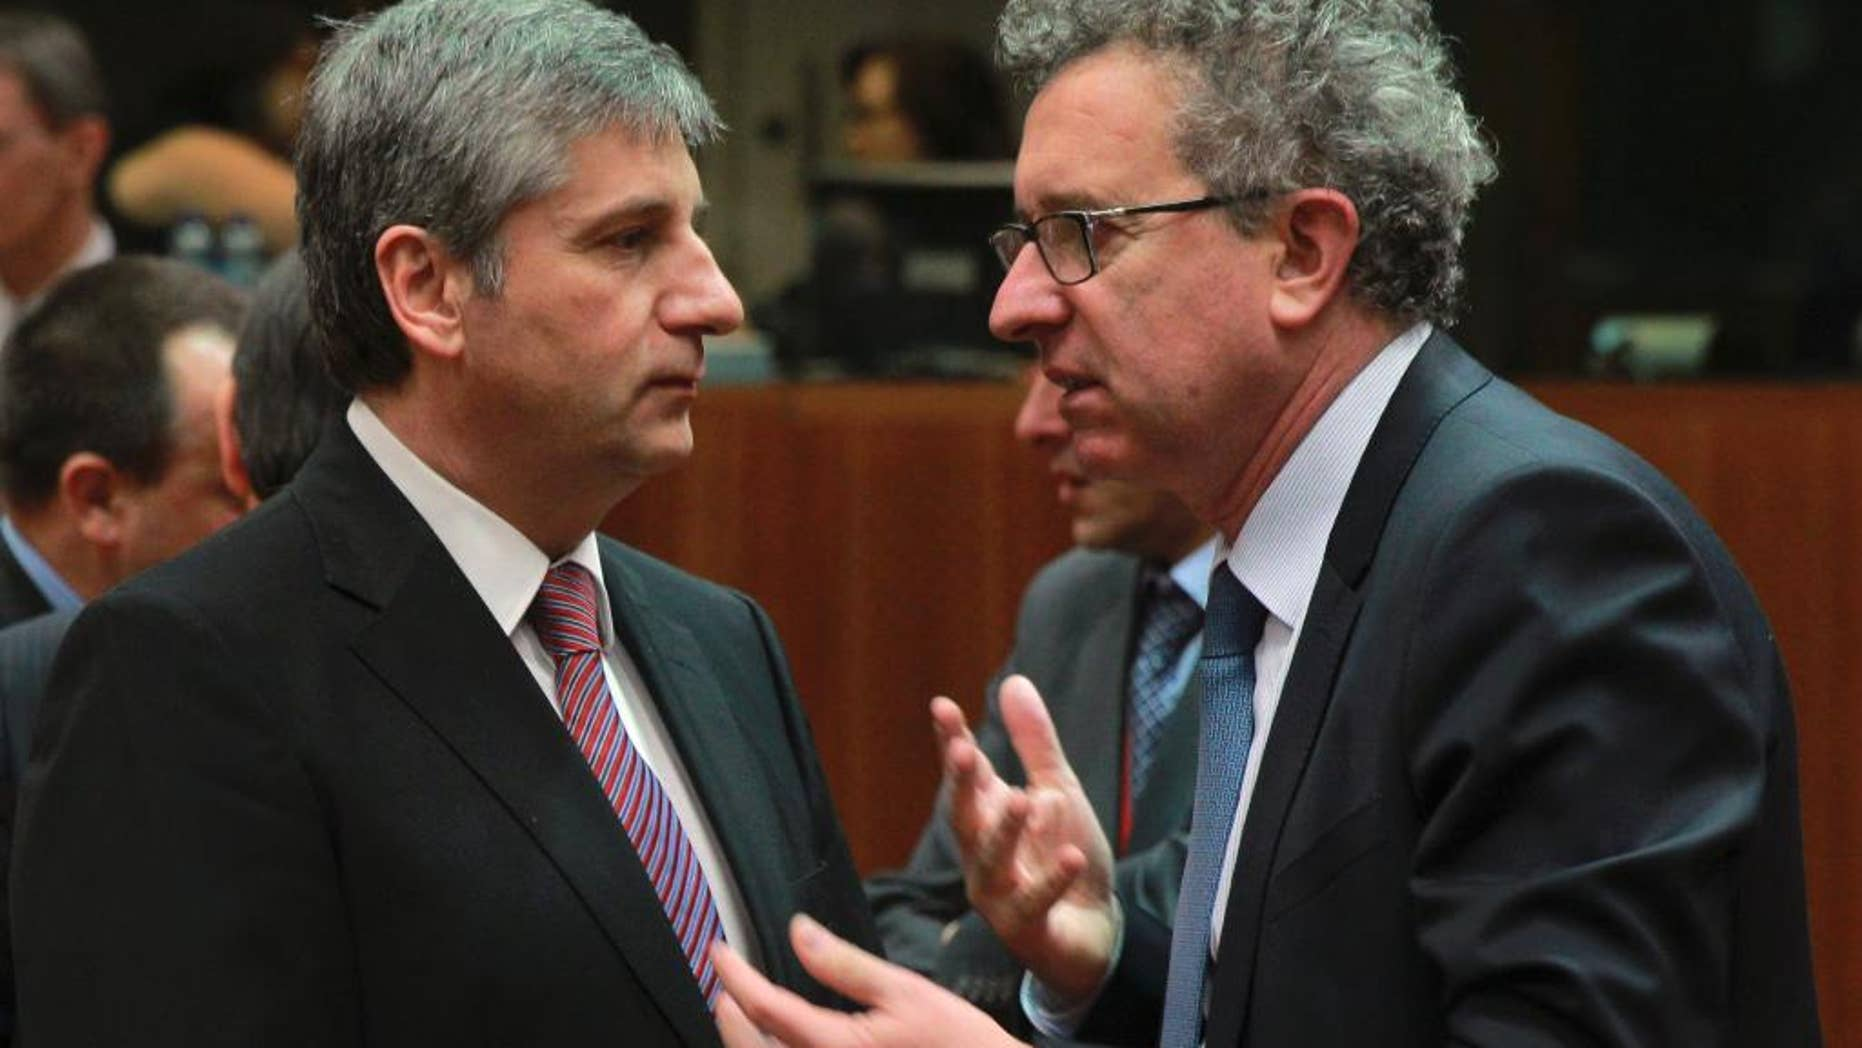 Austrian Finance Minister Michael Spindelegger, left, talks with his Luxembourg's counterpart Pierre Gramegna at the start of an EU finance ministers meeting at the European Council building in Brussels, Tuesday, March 11, 2014. The Council prepares the presidency's mandate to finalize negotiations with the European Parliament on the proposal for a single resolution mechanism for banks. (AP Photo/Yves Logghe)